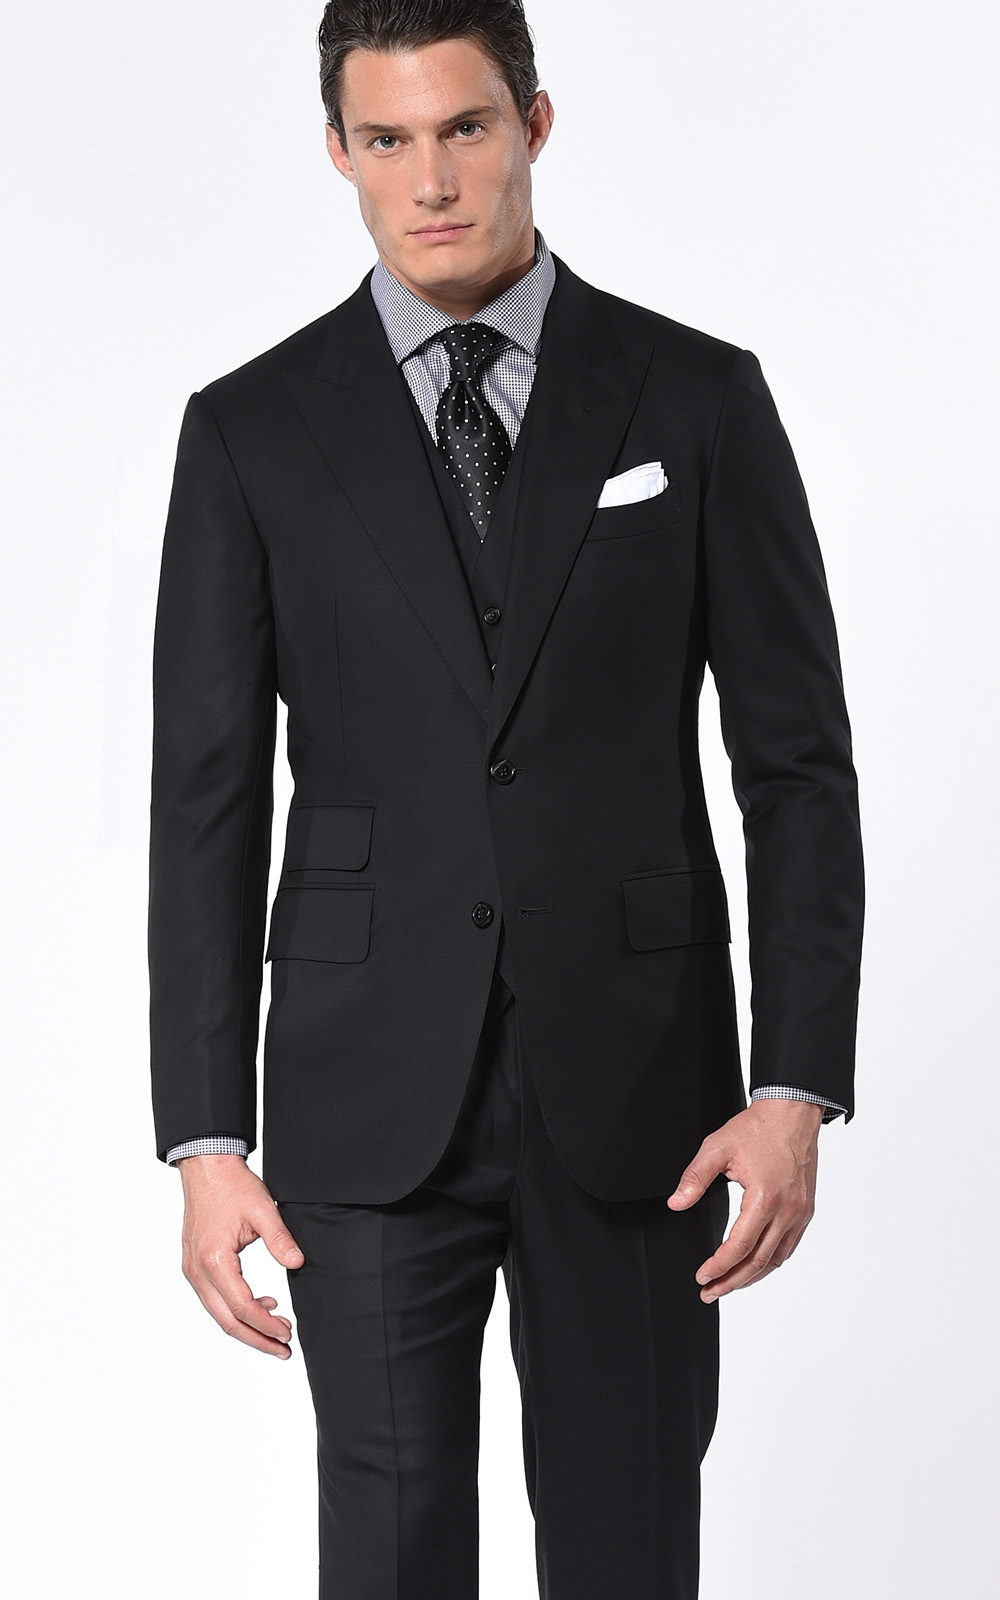 Black Two-Button Super 110's Bespoke Suit